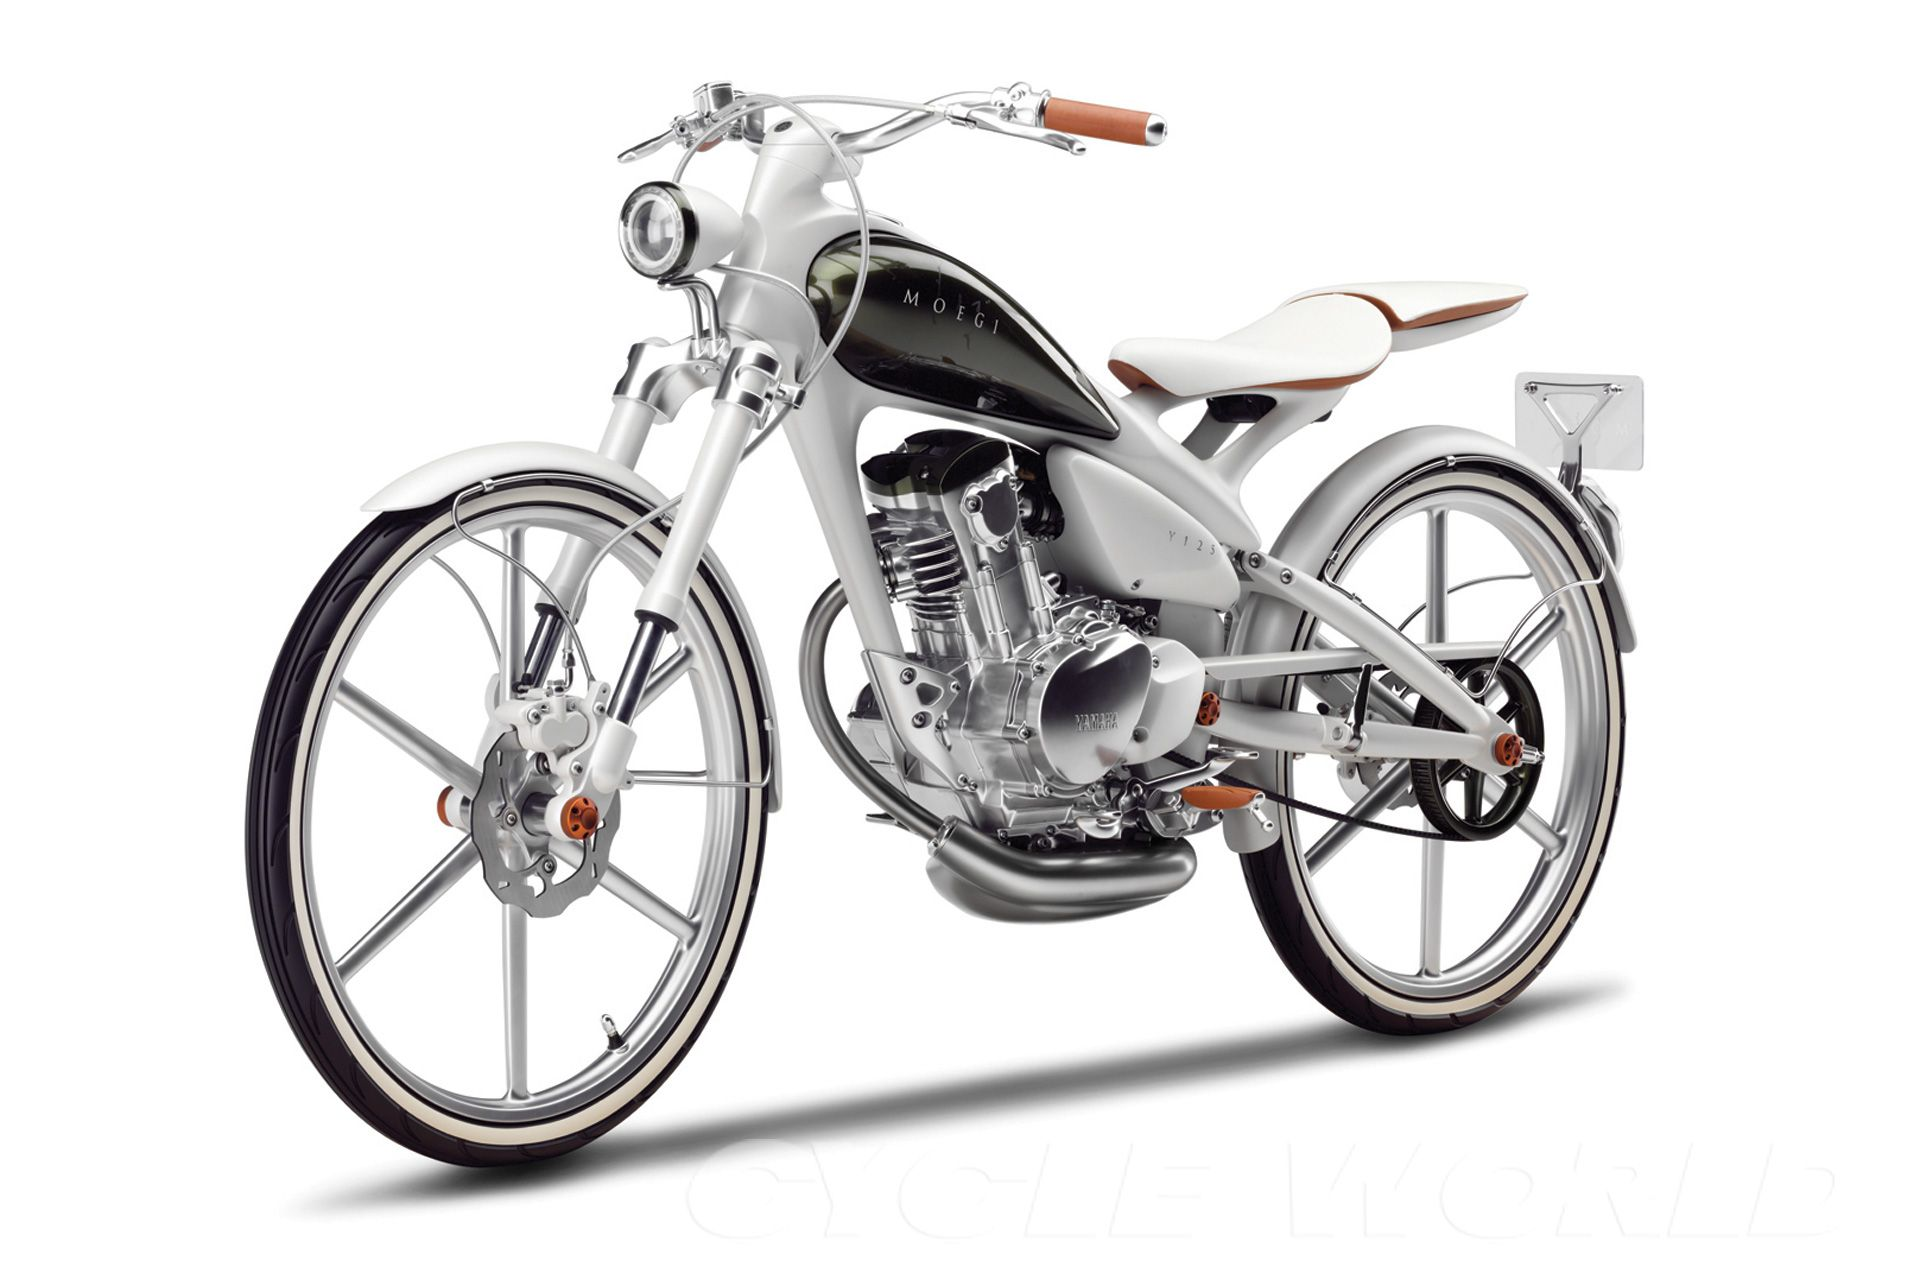 Yamaha Y125 Moegi 125cc Fuel Injected Single Cylinder